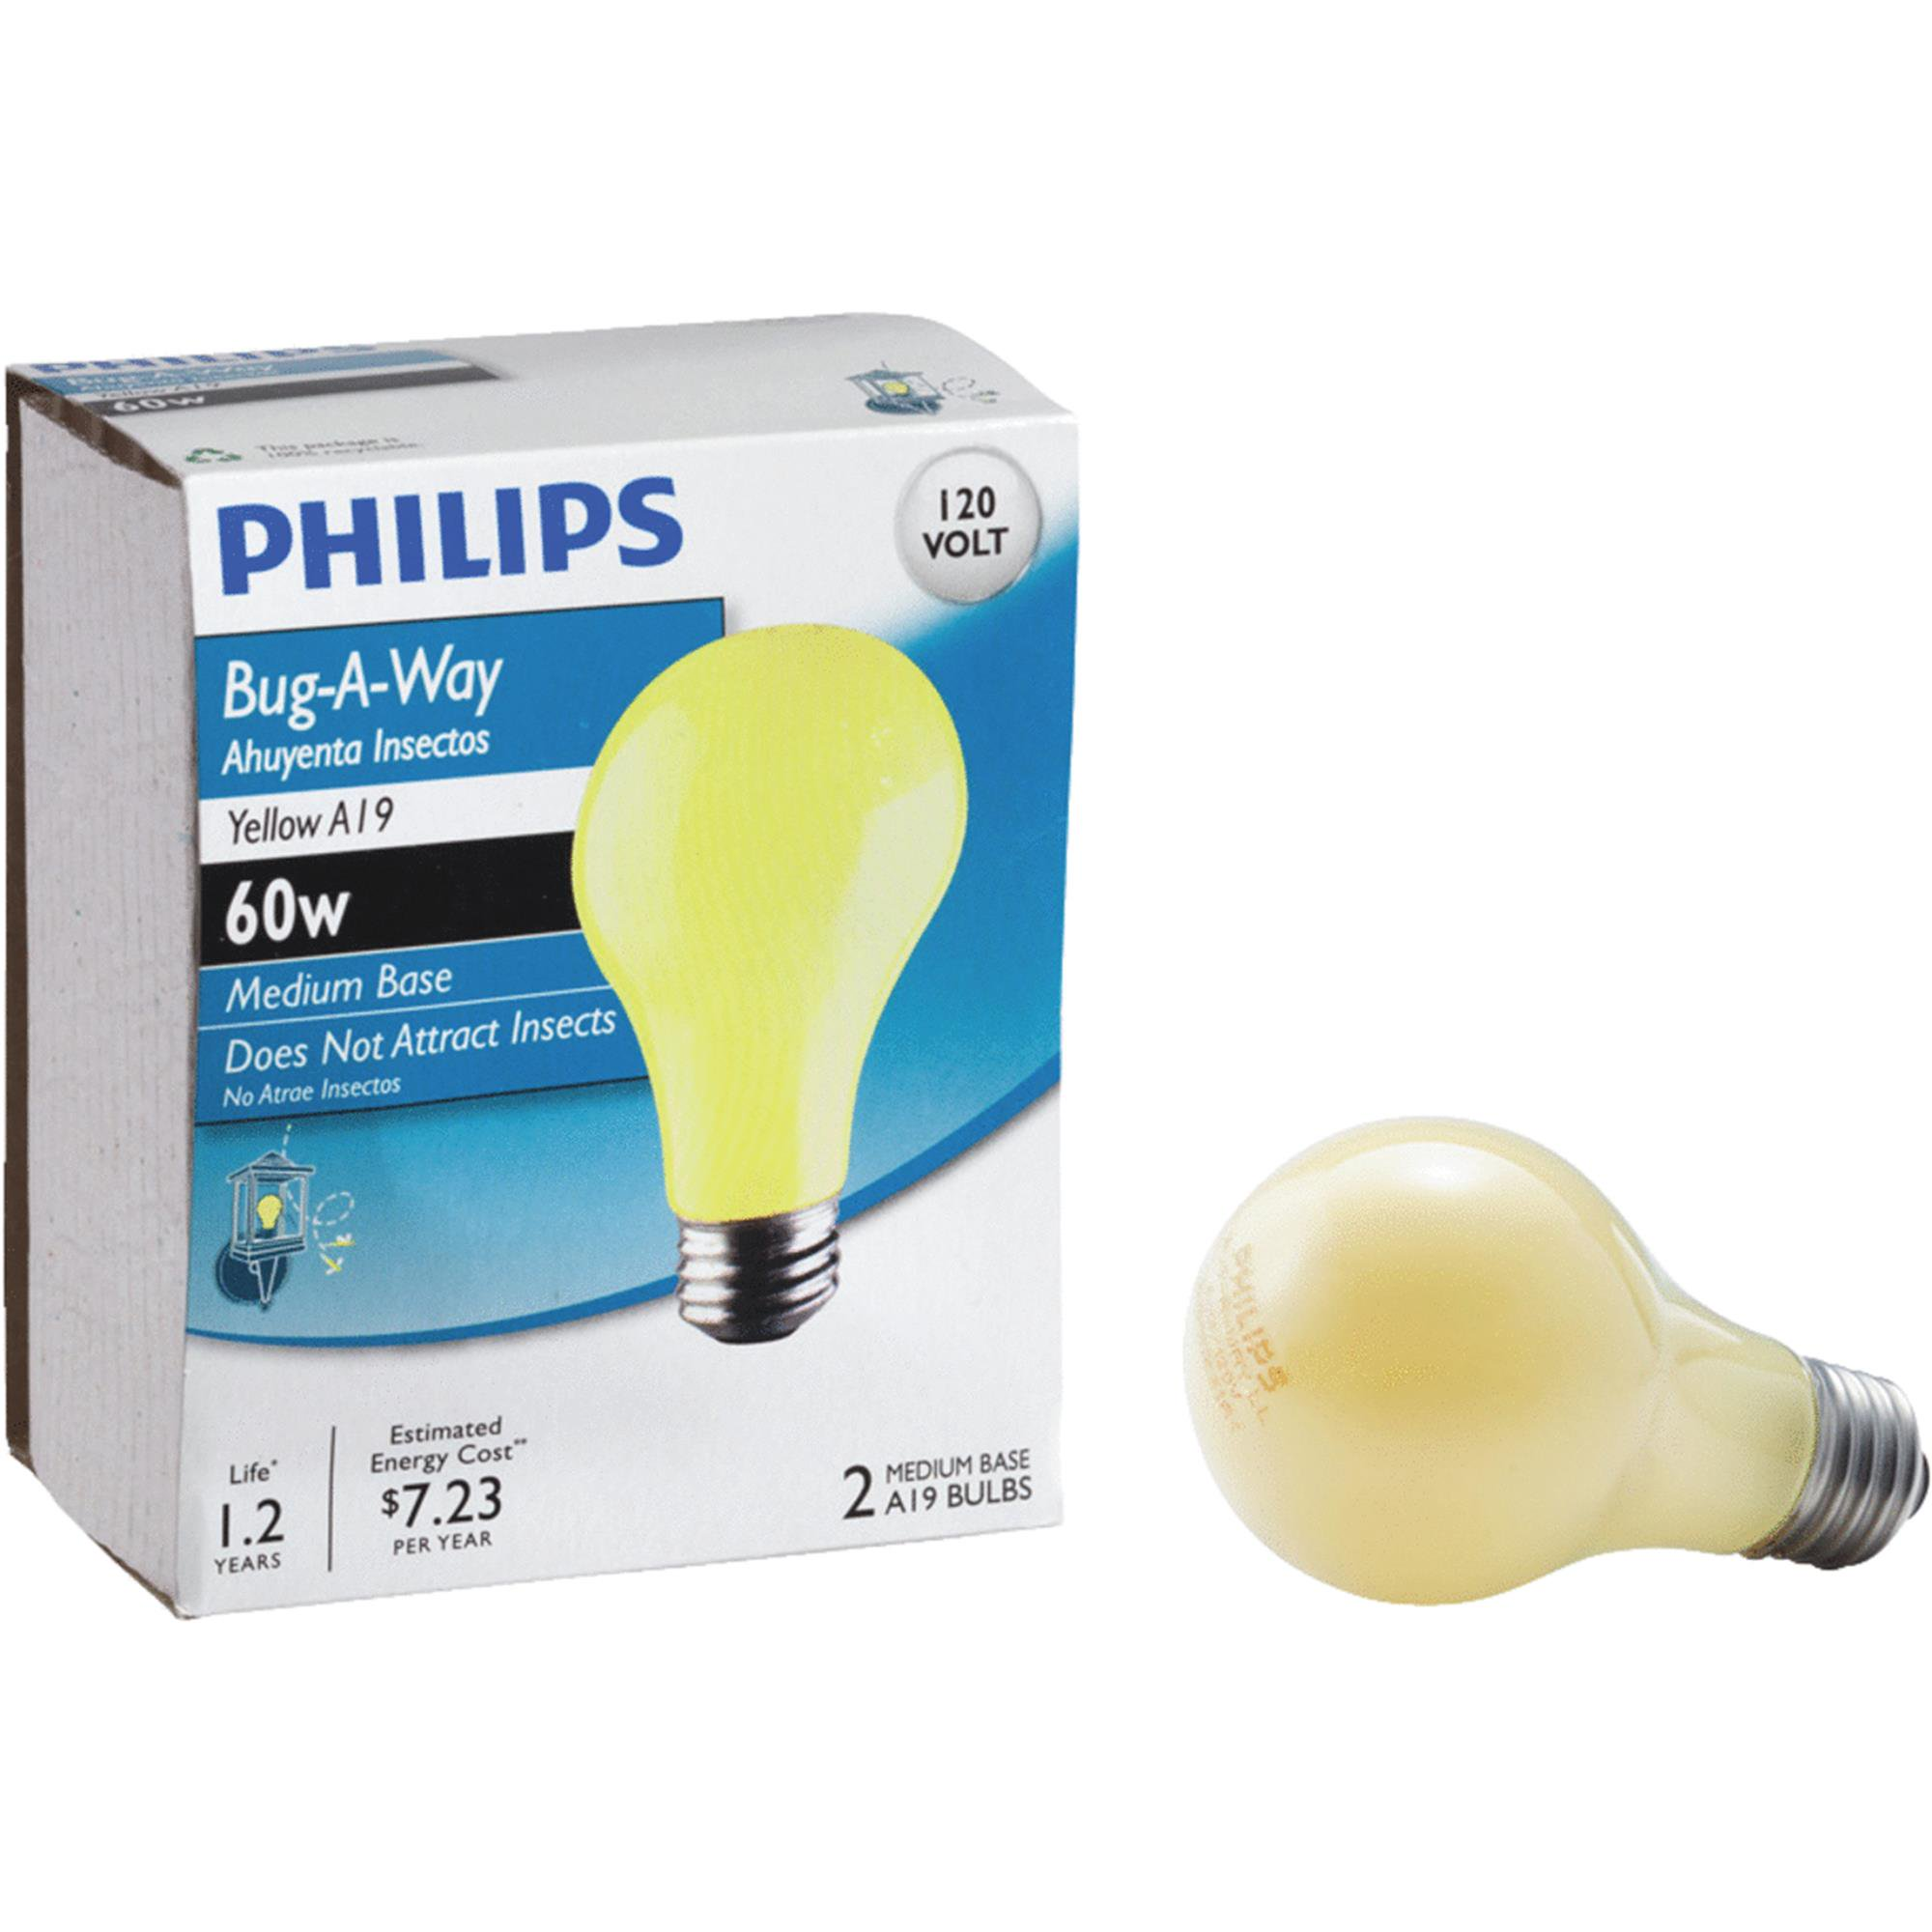 Philips Bug-A-Way A19 Medium Incandescent Bug Light Bulb